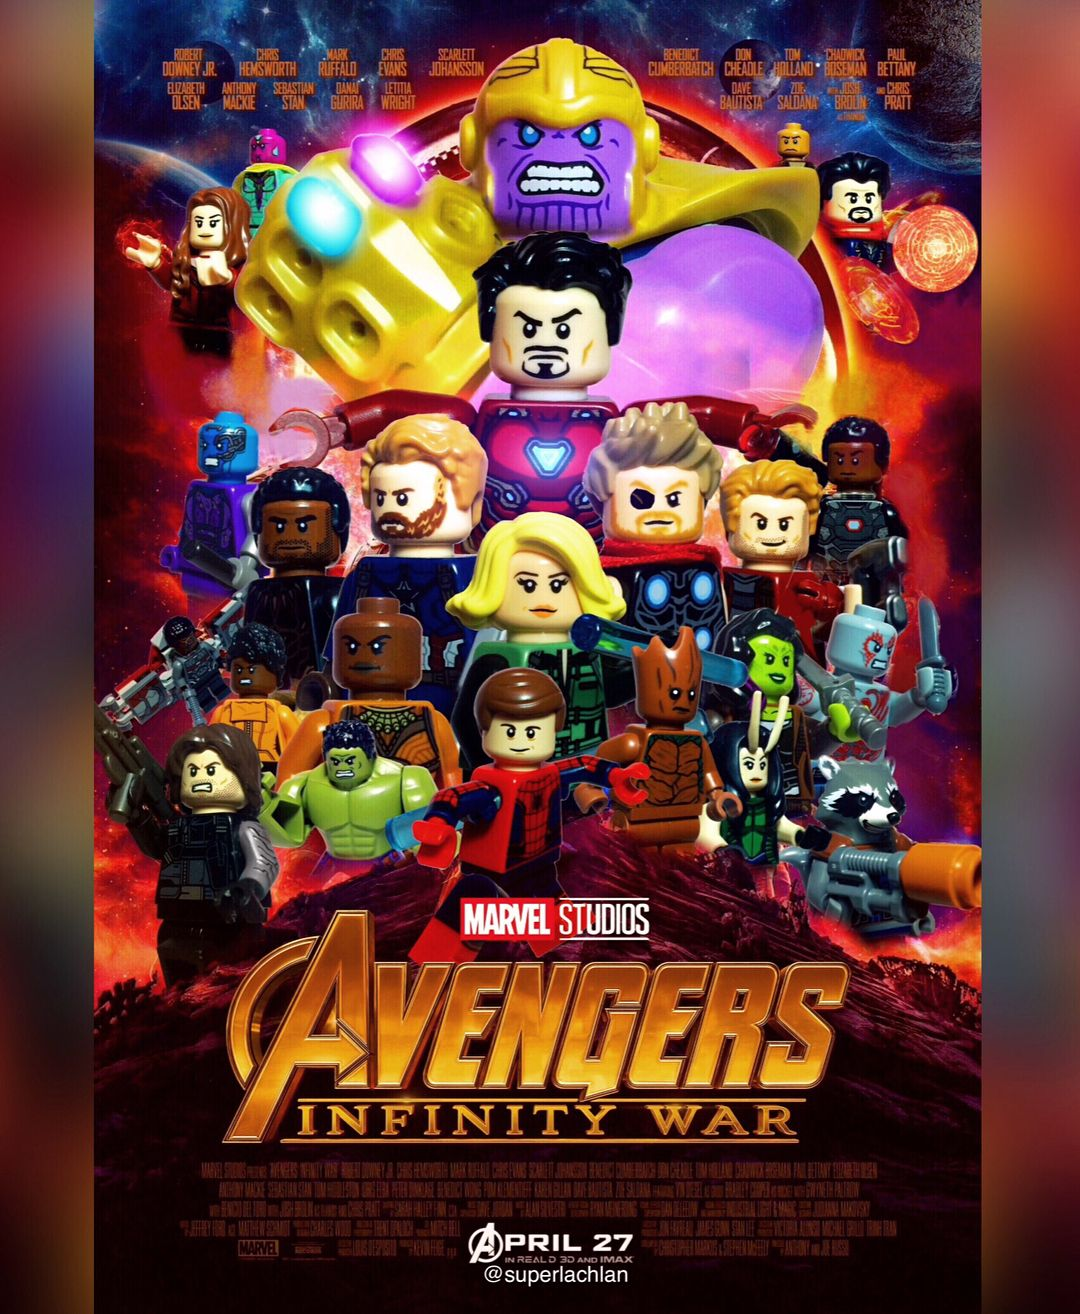 Avengers infinity war official movie poster in lego - Film lego marvel ...